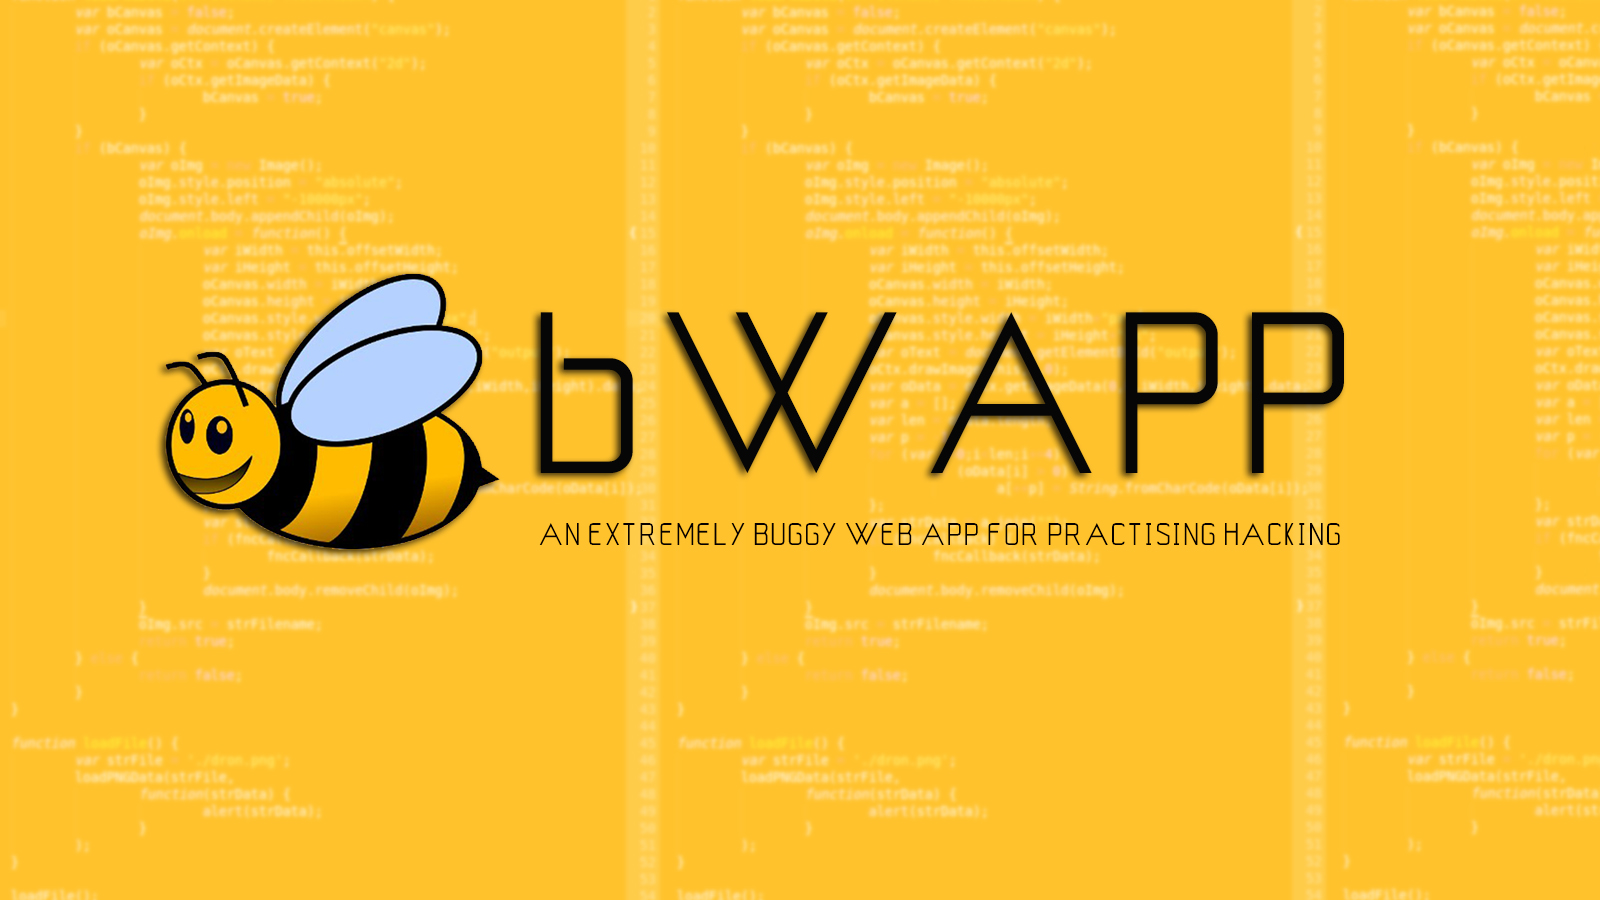 bWAPP - An Extremely Buggy Web App For Practising Hacking